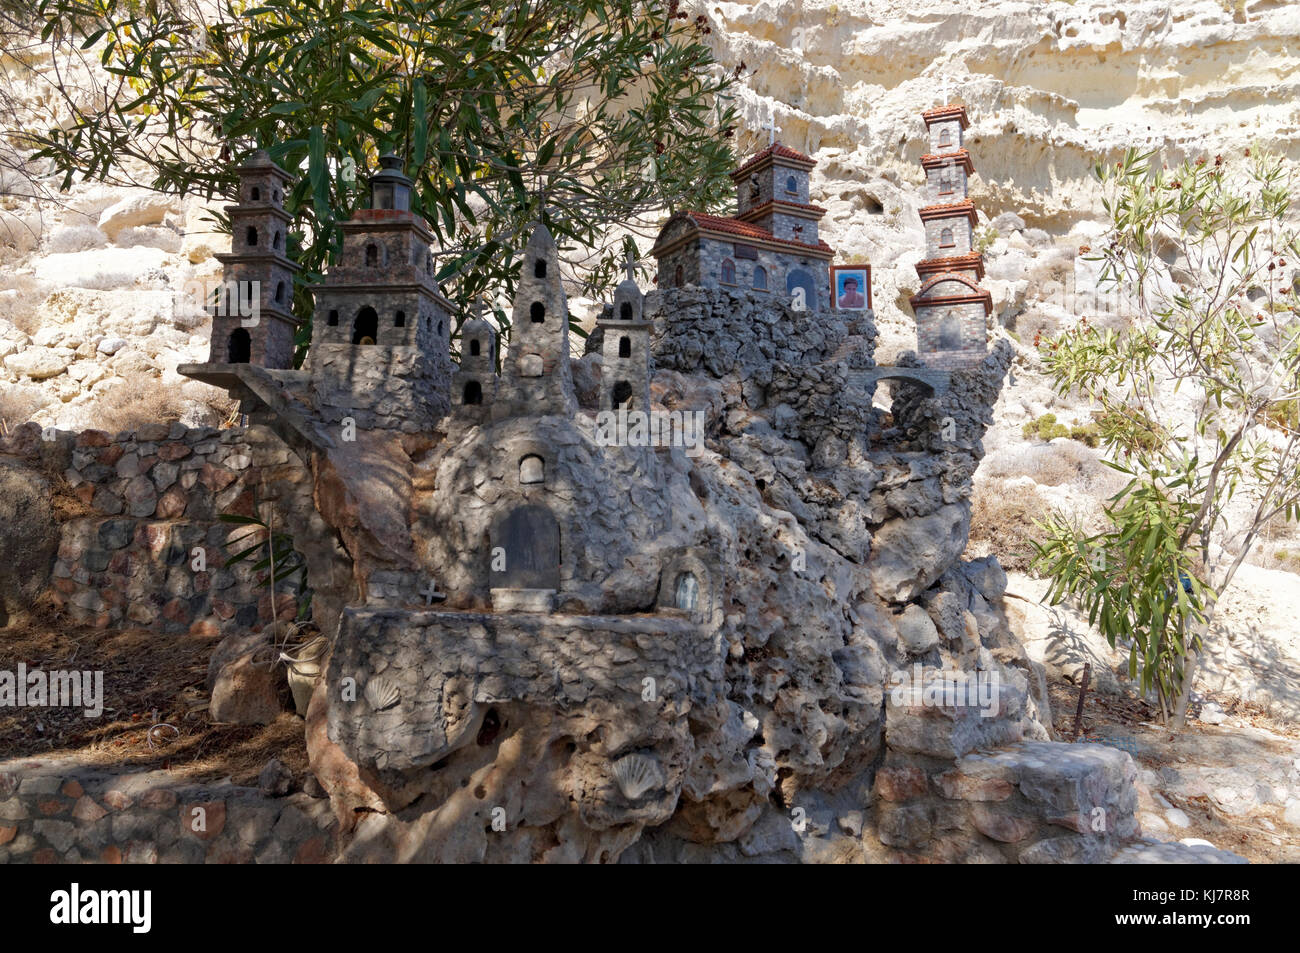 Memorial model of churches and religeous buildings in great detail, made from pebbles found on beach, near Archangelos, - Stock Image